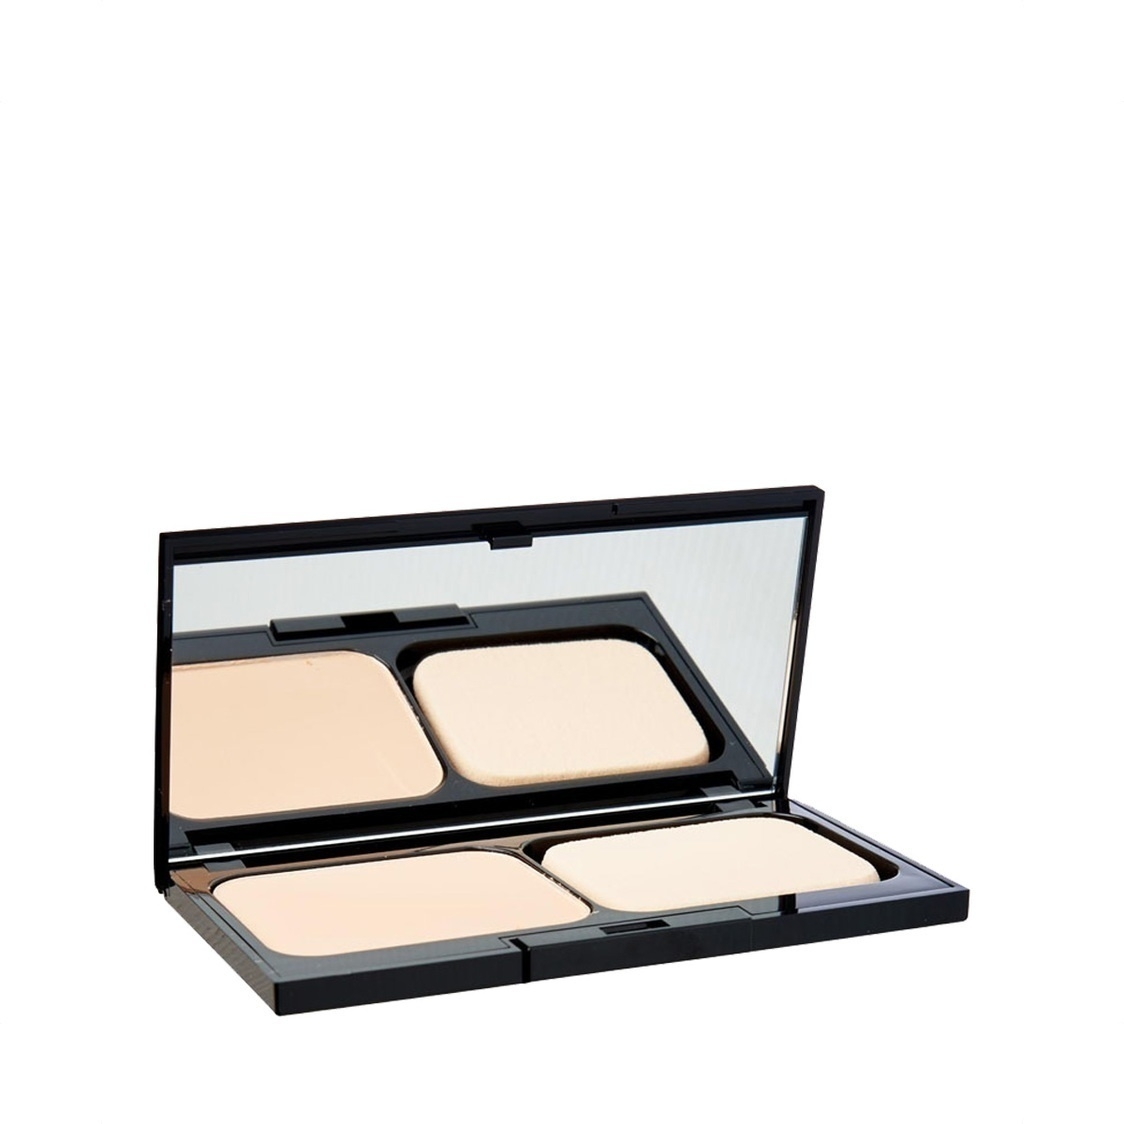 Colorstay 2 Way Foundation